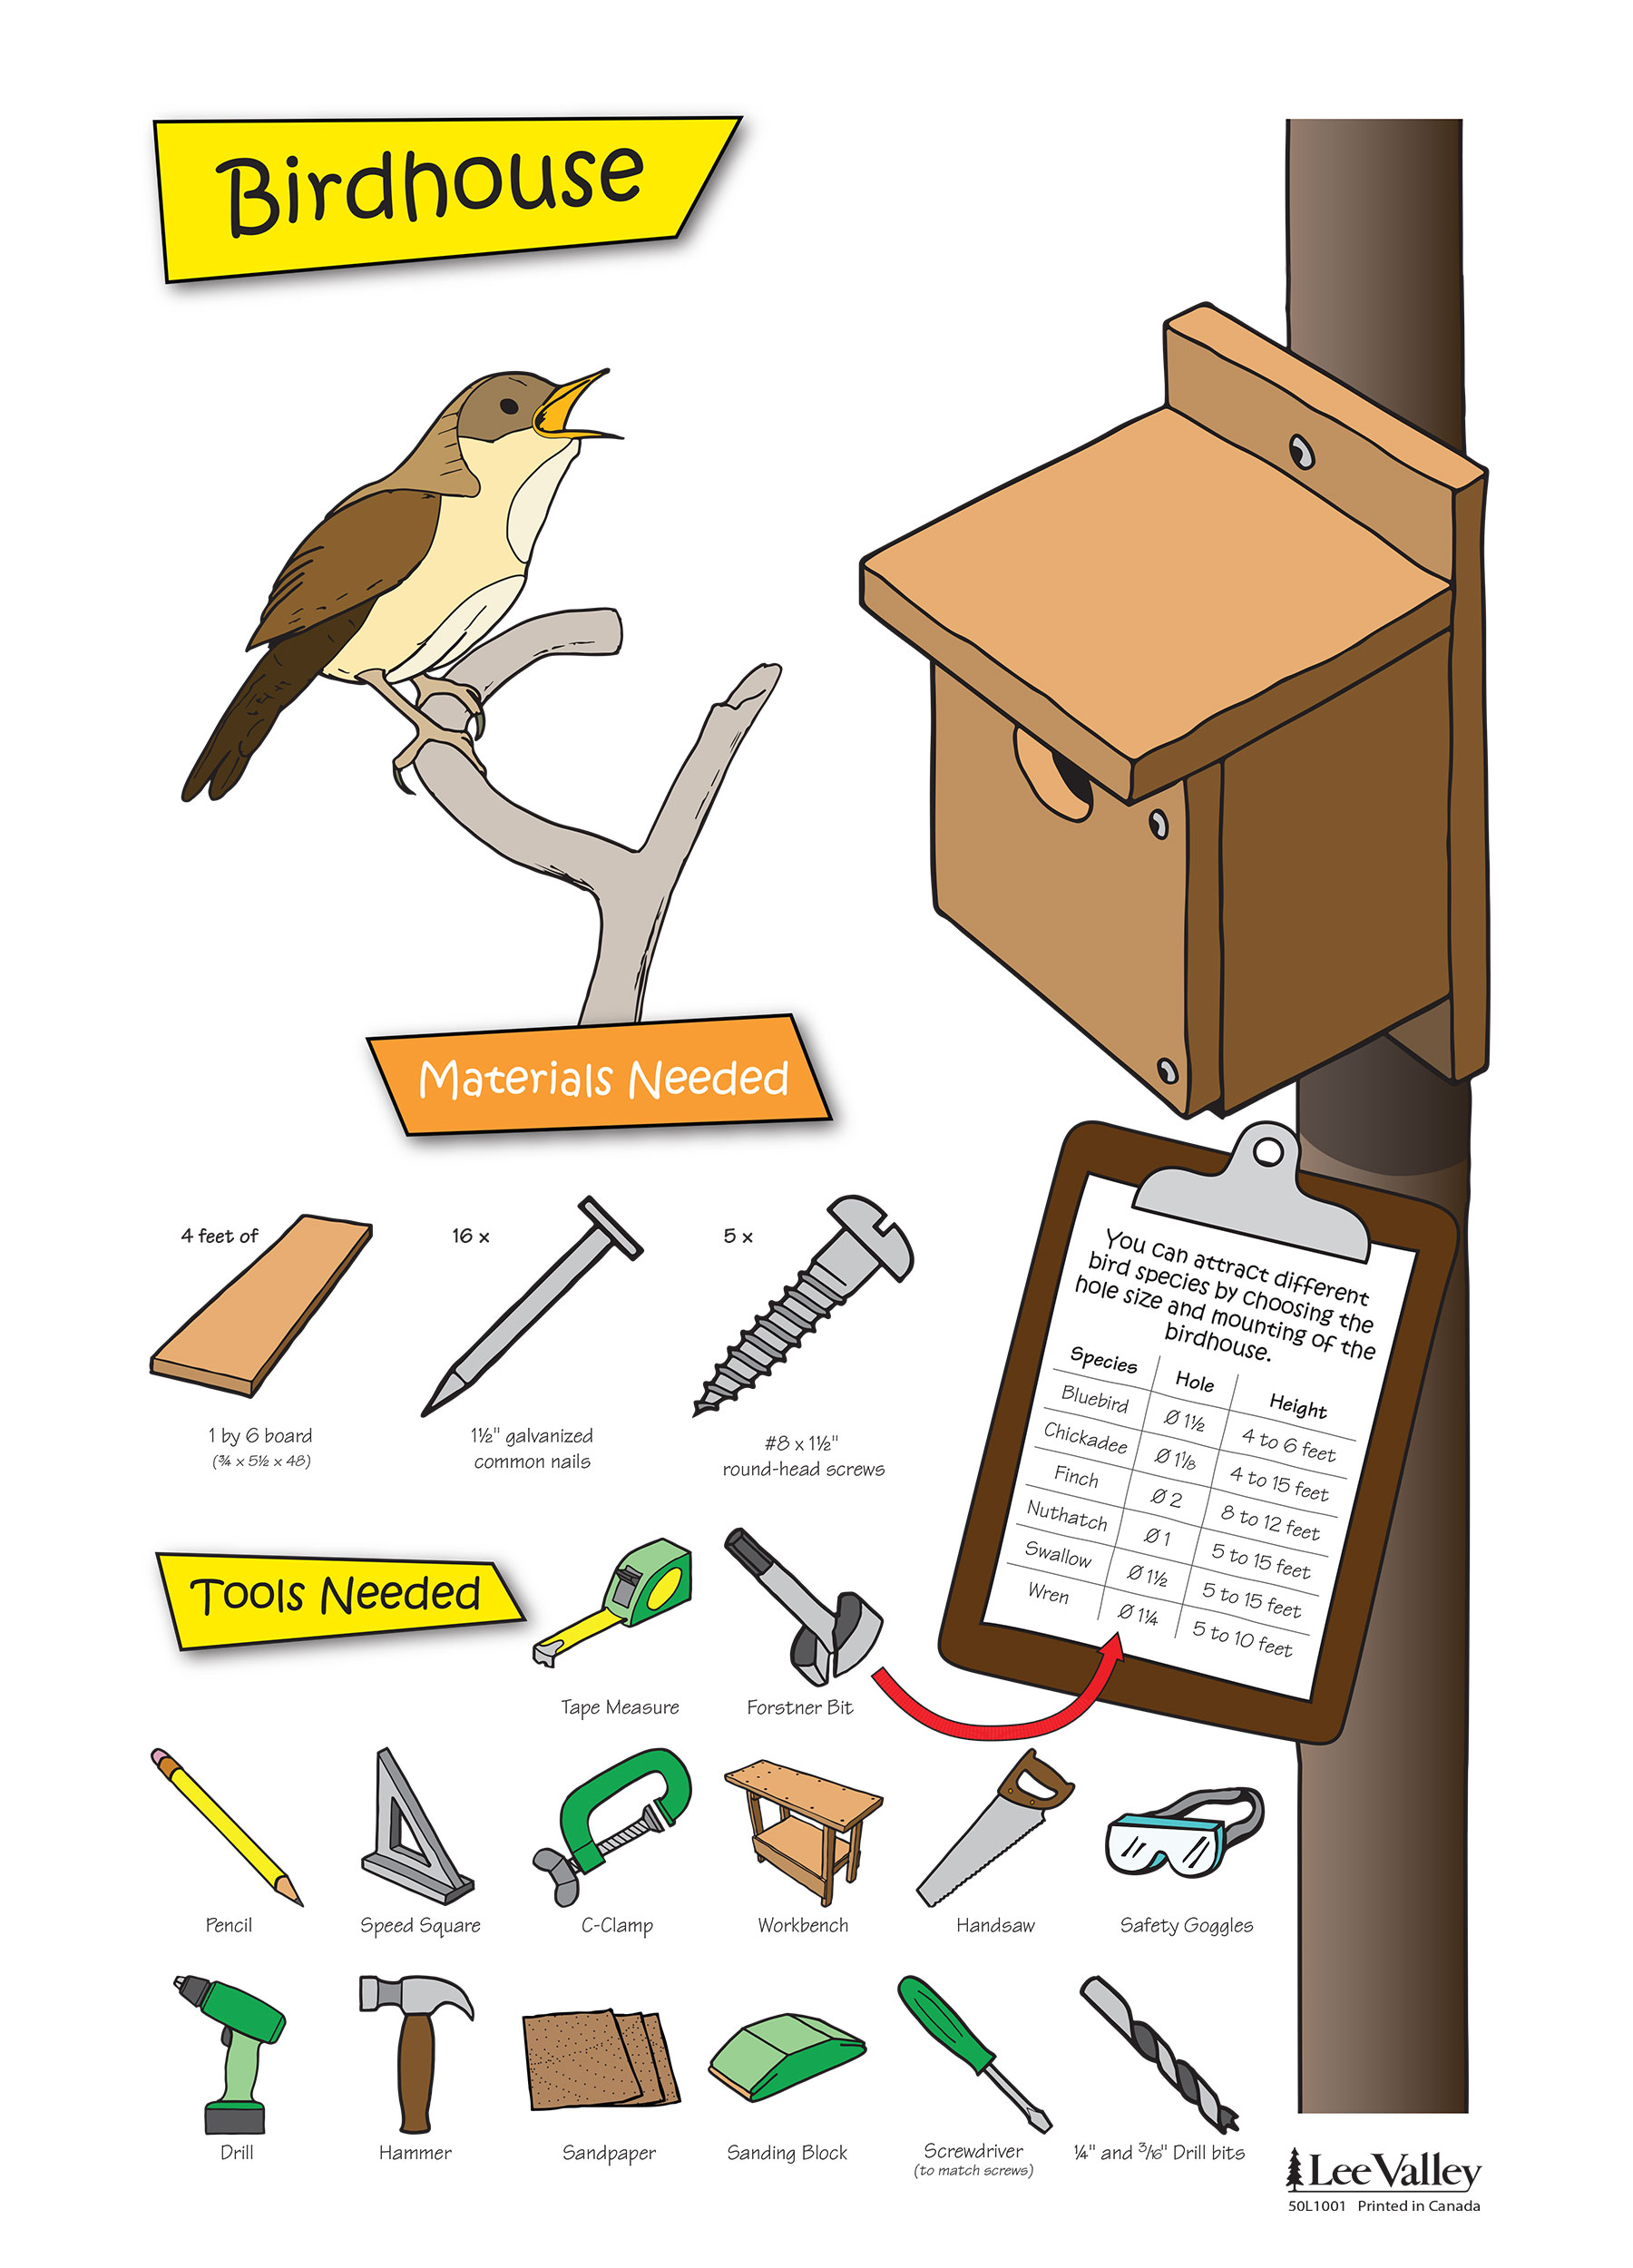 Build a Birdhouse - Materials Needed